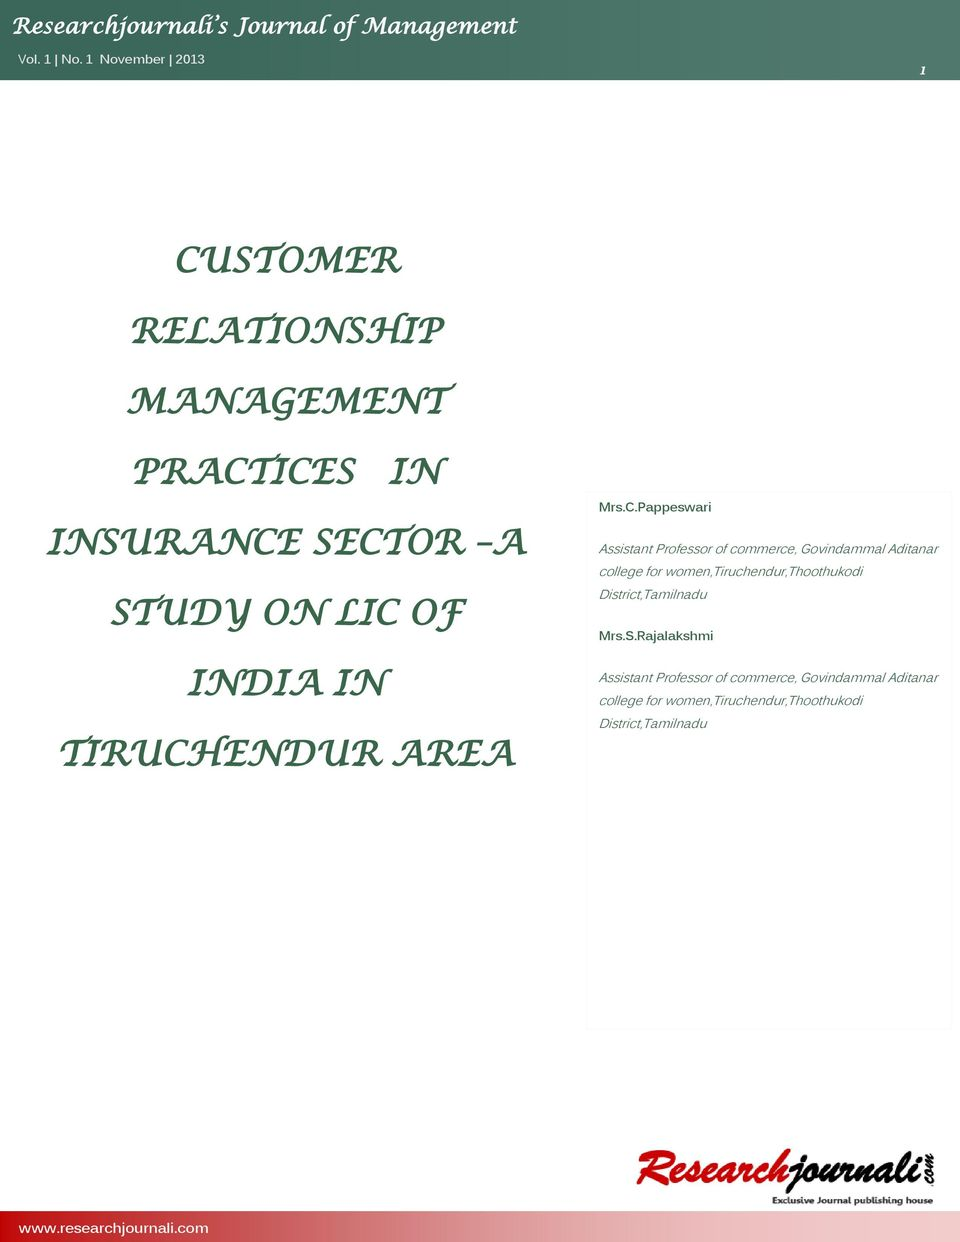 customer relationship management related to insurance sector